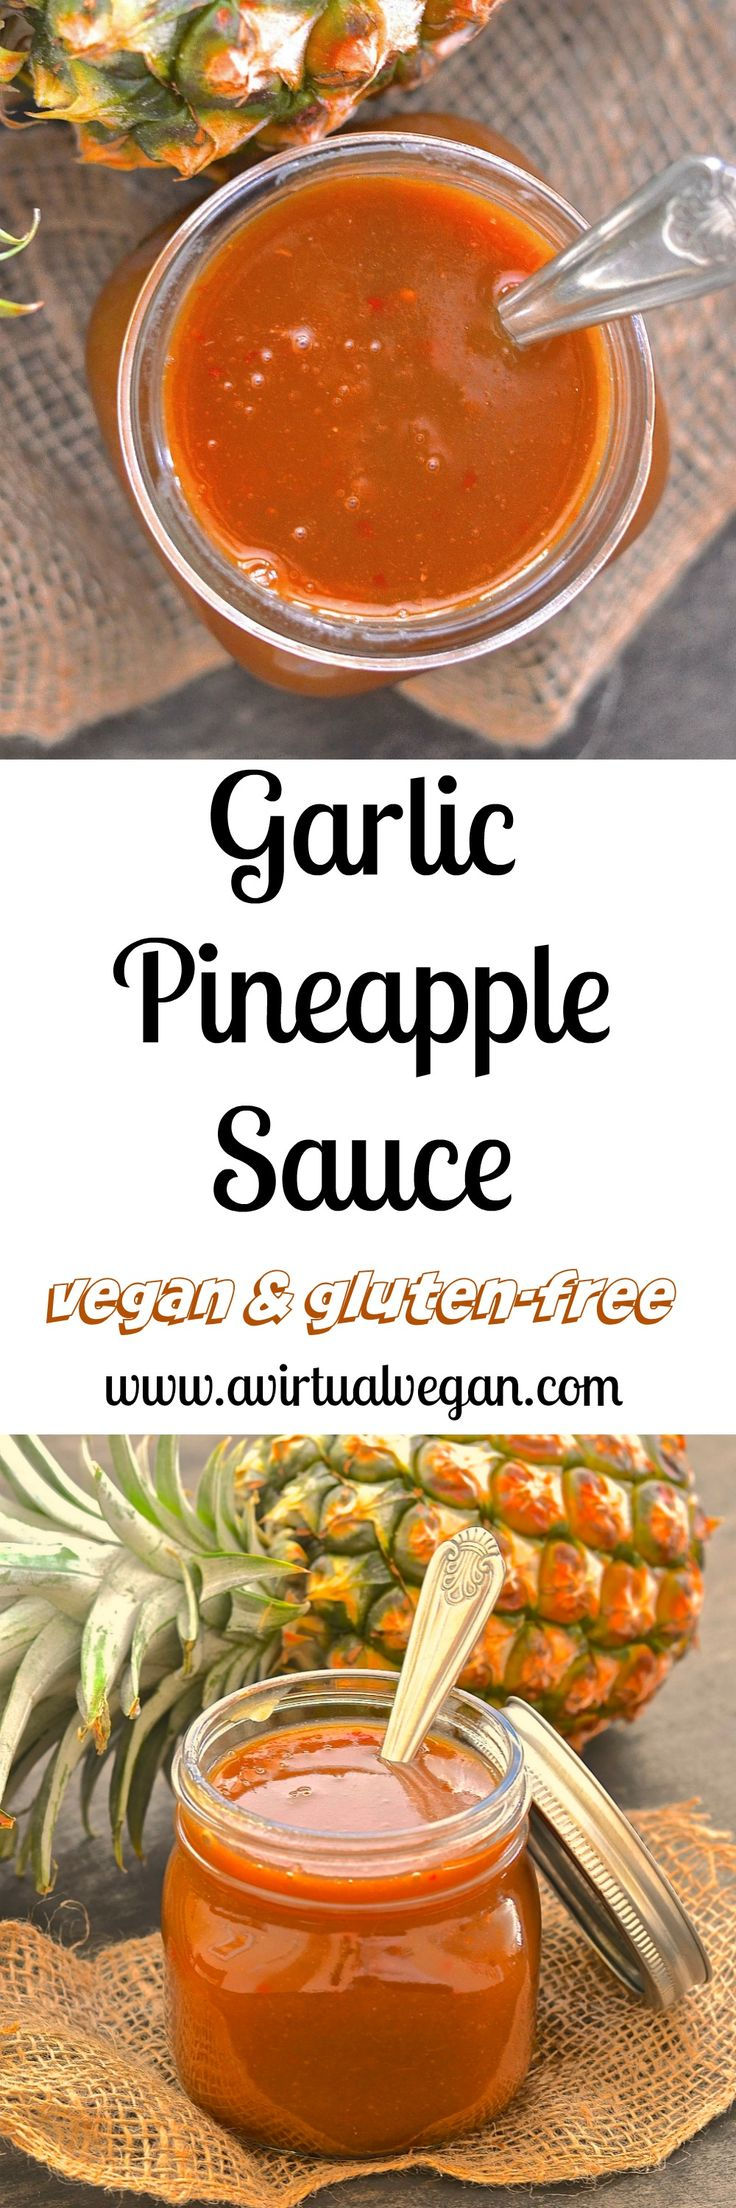 Get your coconut shell bikini & grass skirt ready because when you try this super tangy, sweet & spicy Garlic Pineapple Sauce you will want to…